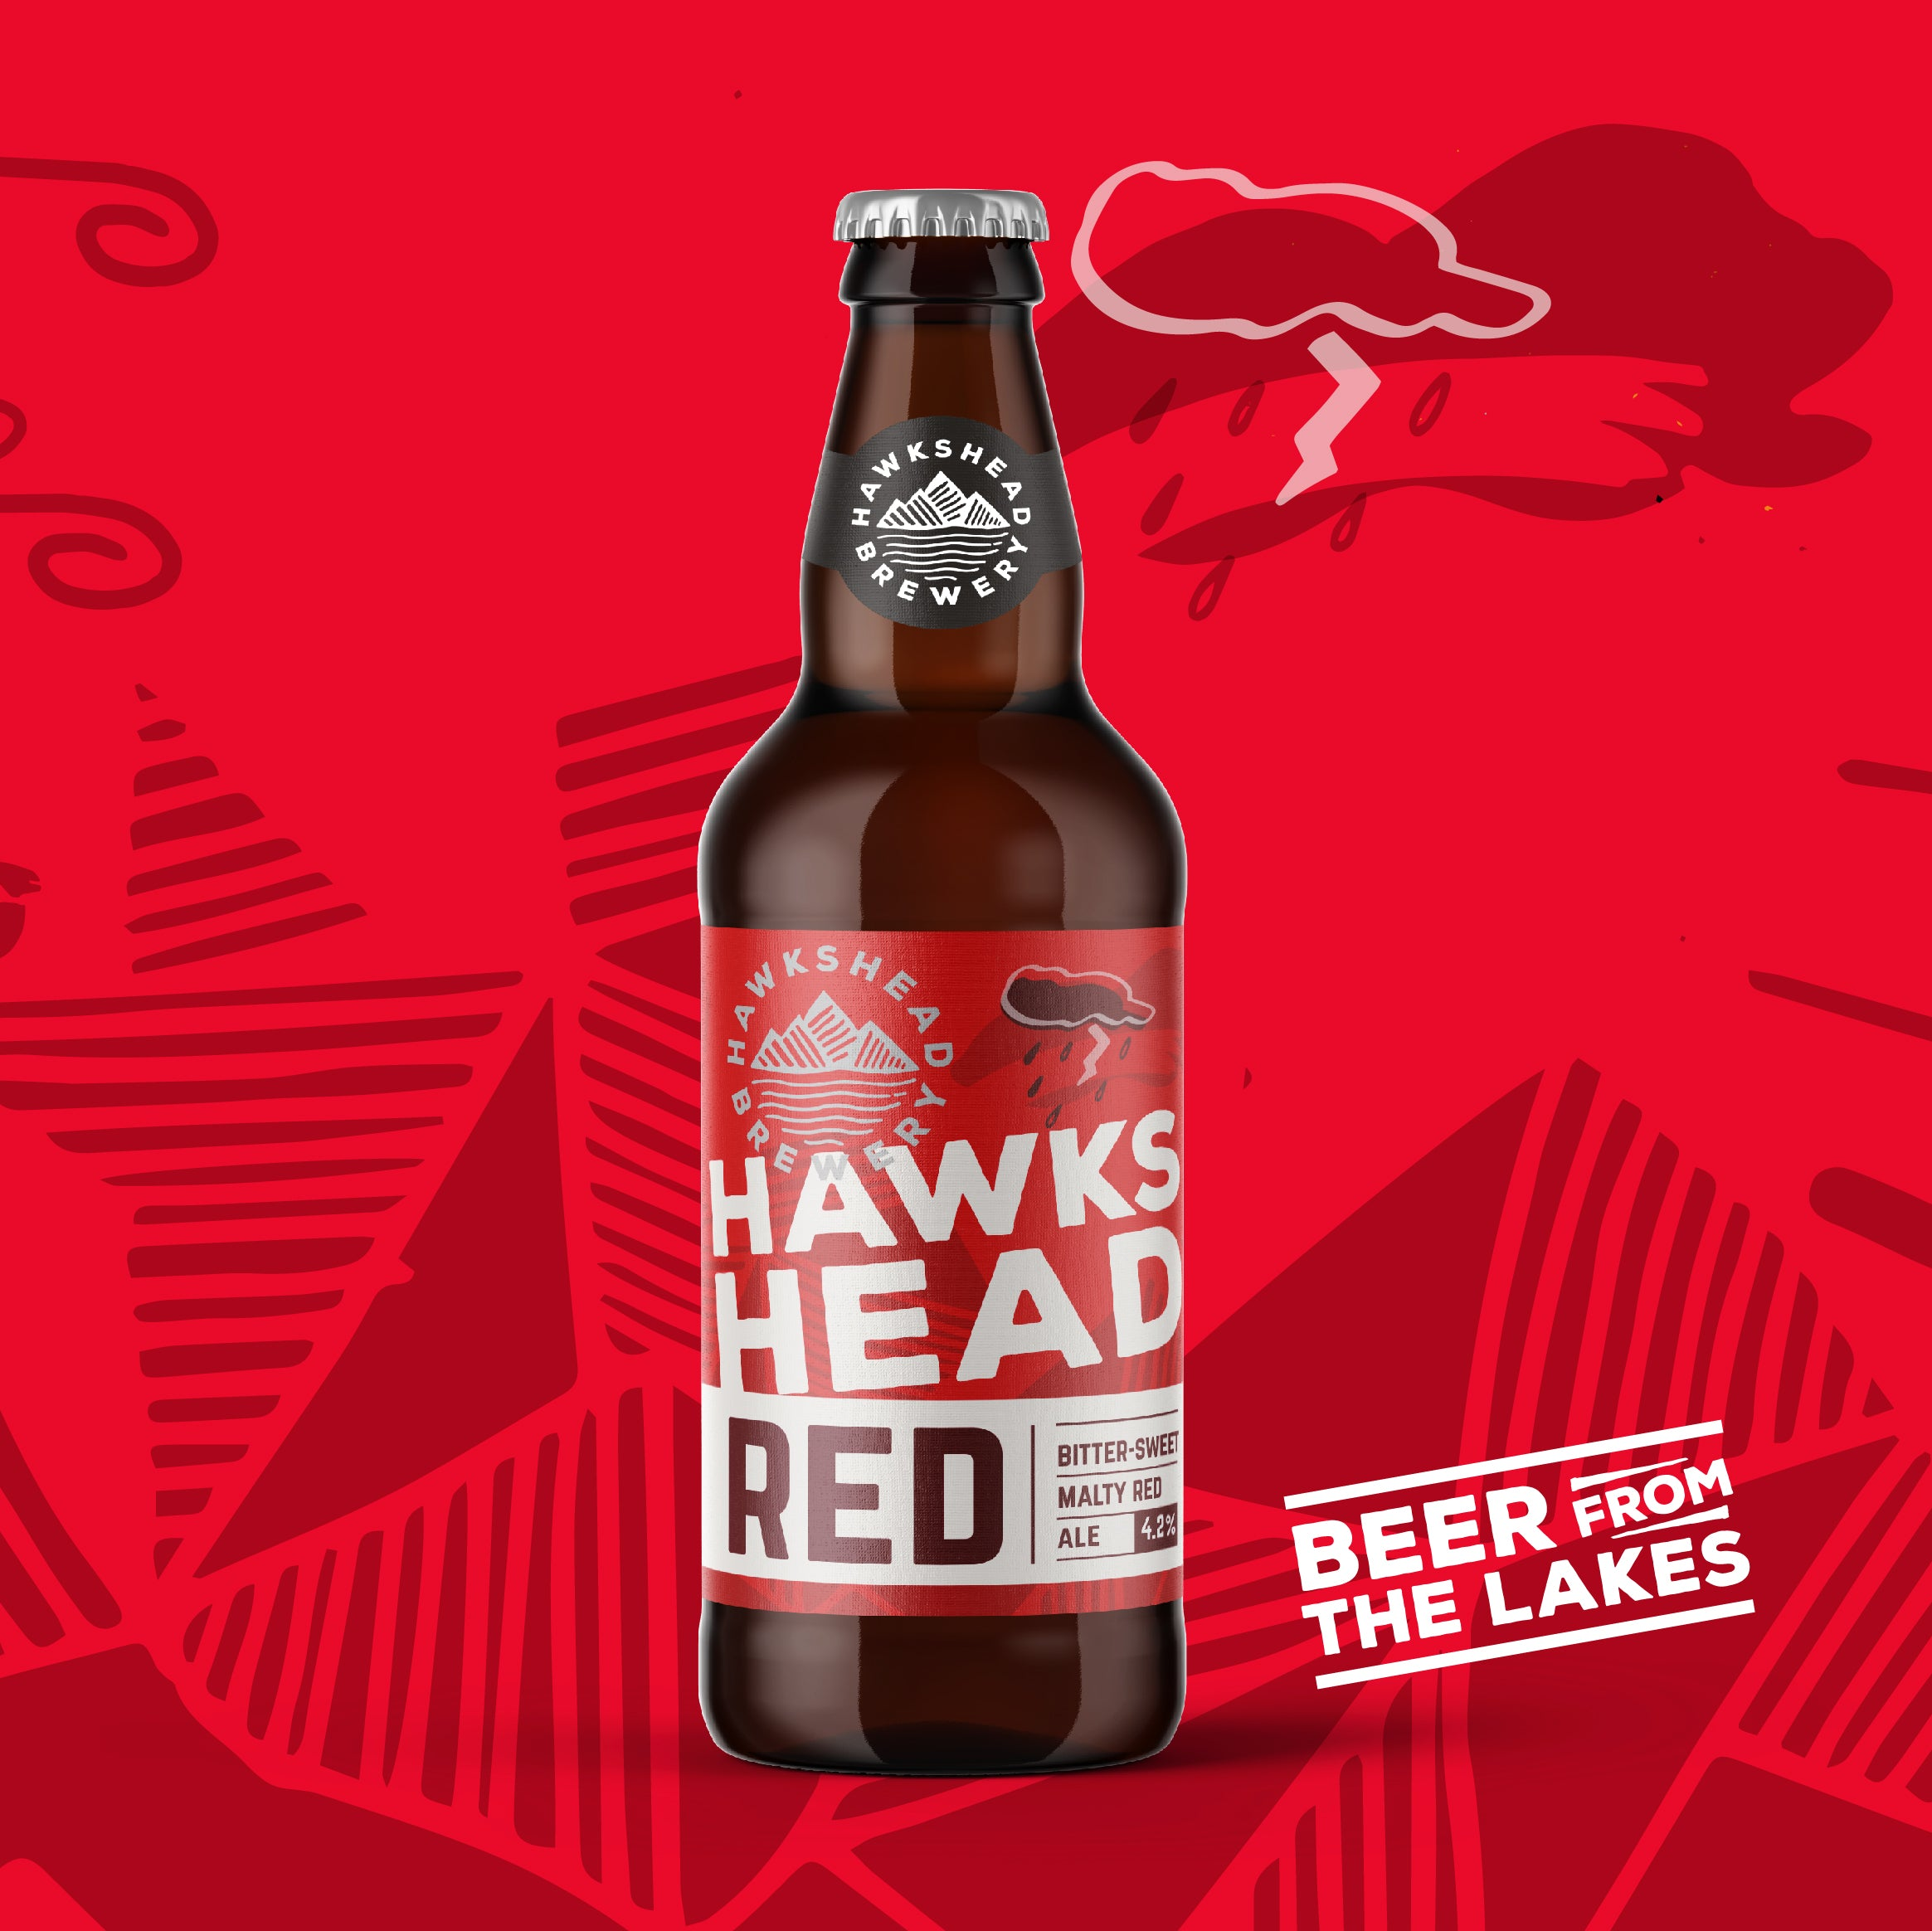 Hawkshead Bitter-sweet Red Ale, 8 Bottles of 500ml. Hawskhead Brewery